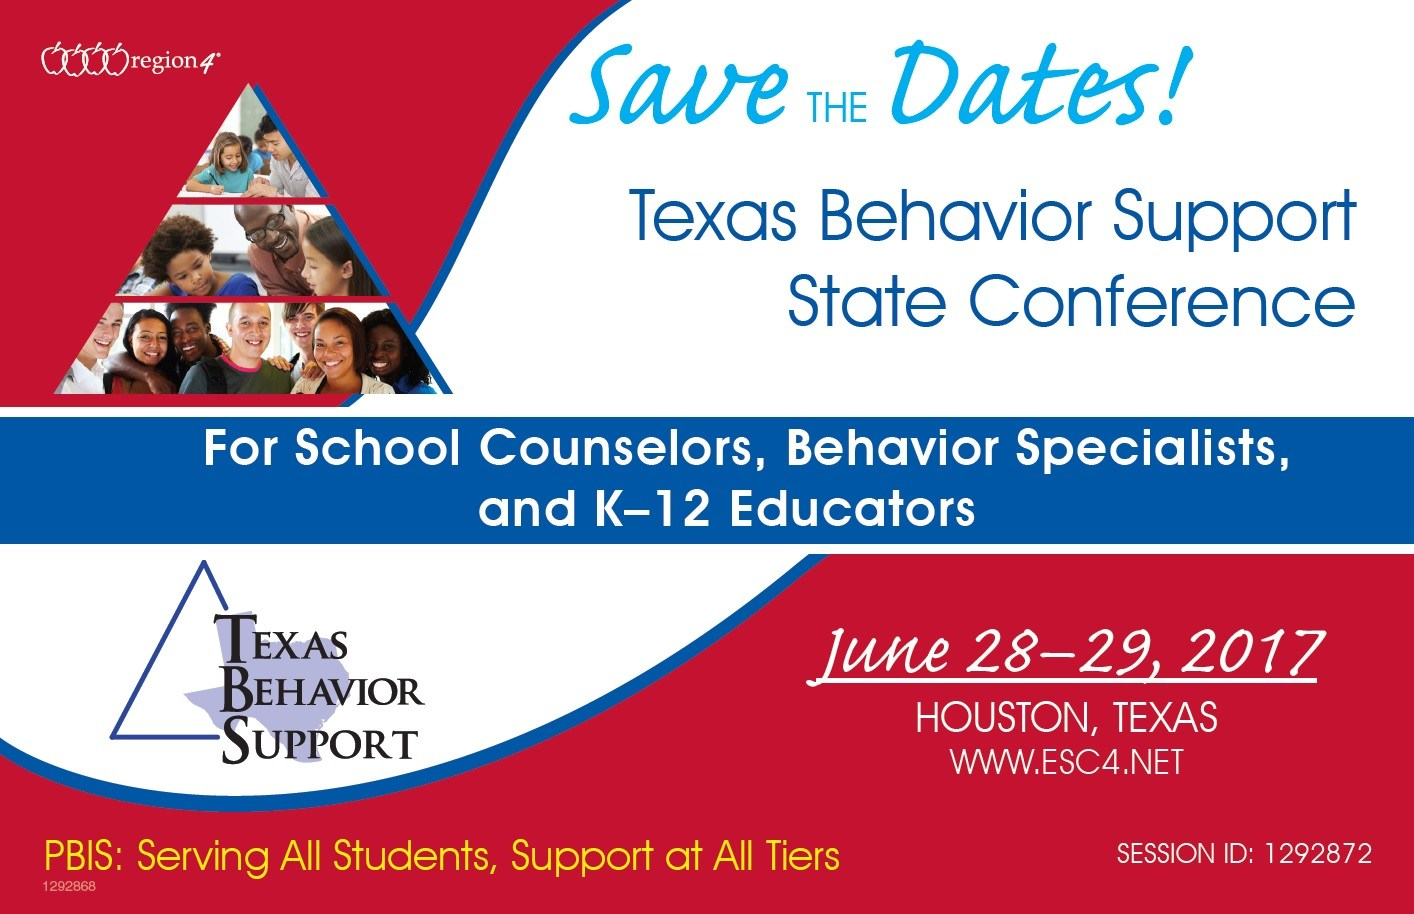 Registration information for the State Behavior Conference held at ESC 4 in Houston, Texas